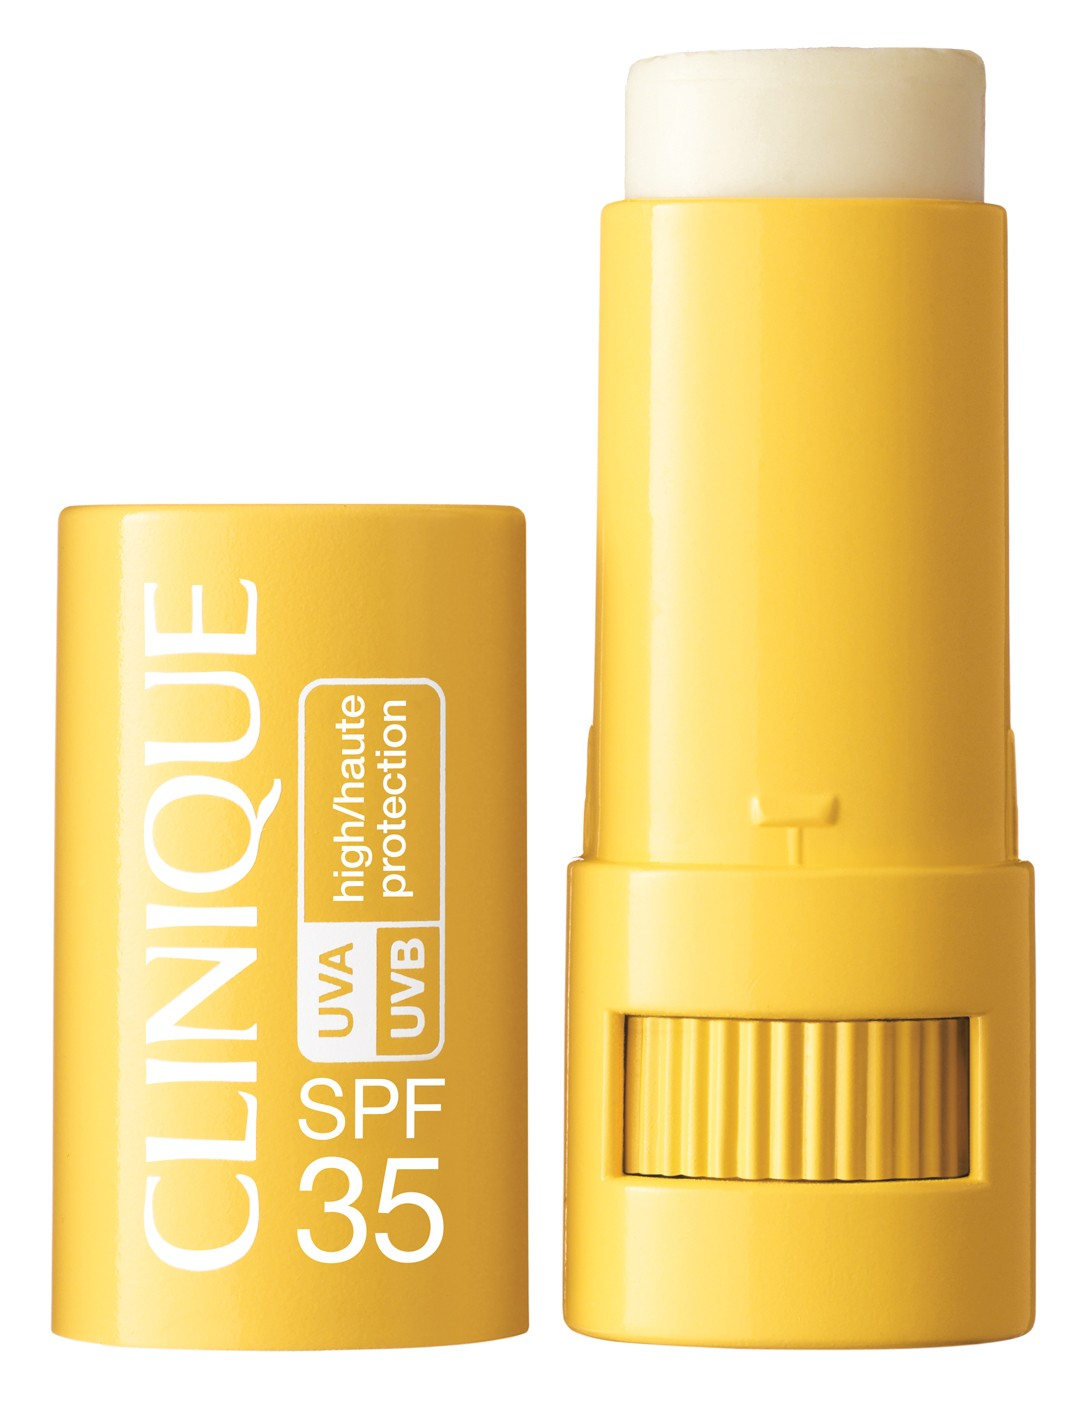 Clinique Sun Targeted Protection Stick